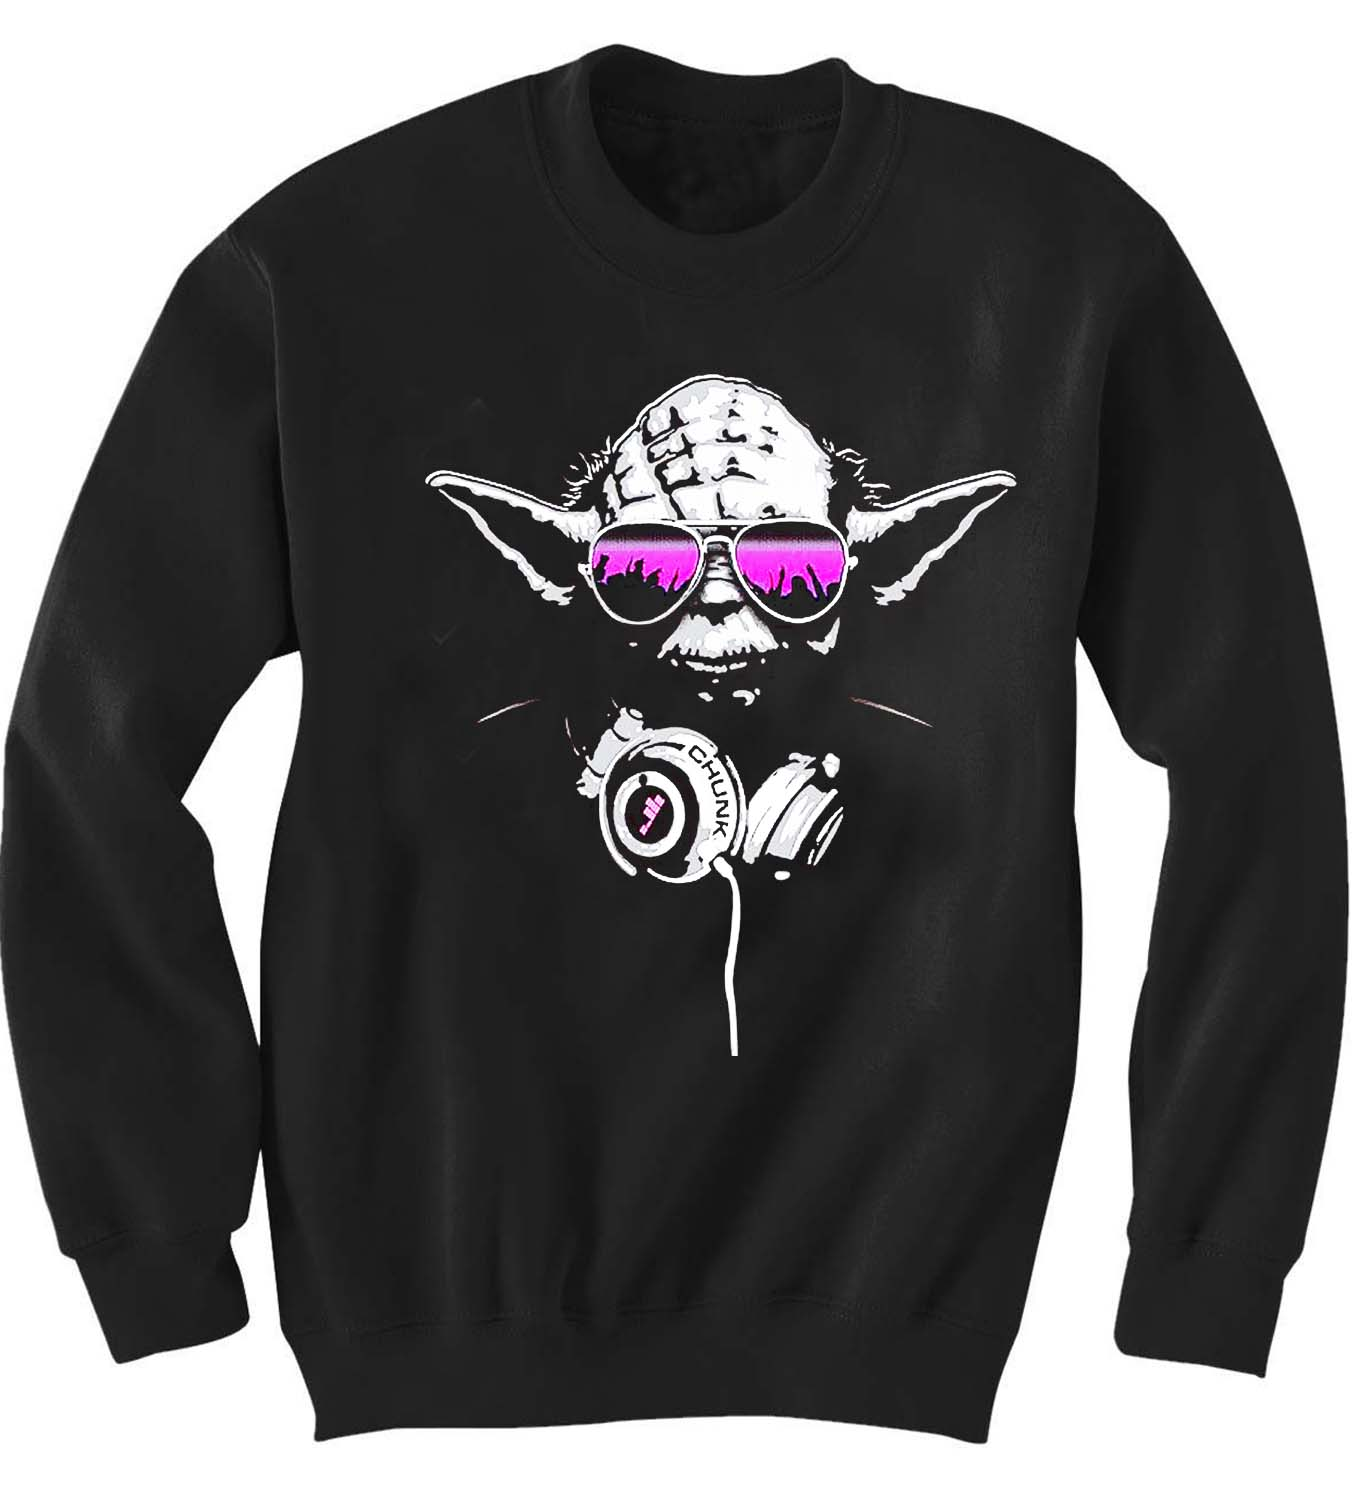 Crewneck Sweatshirts yoda beats design